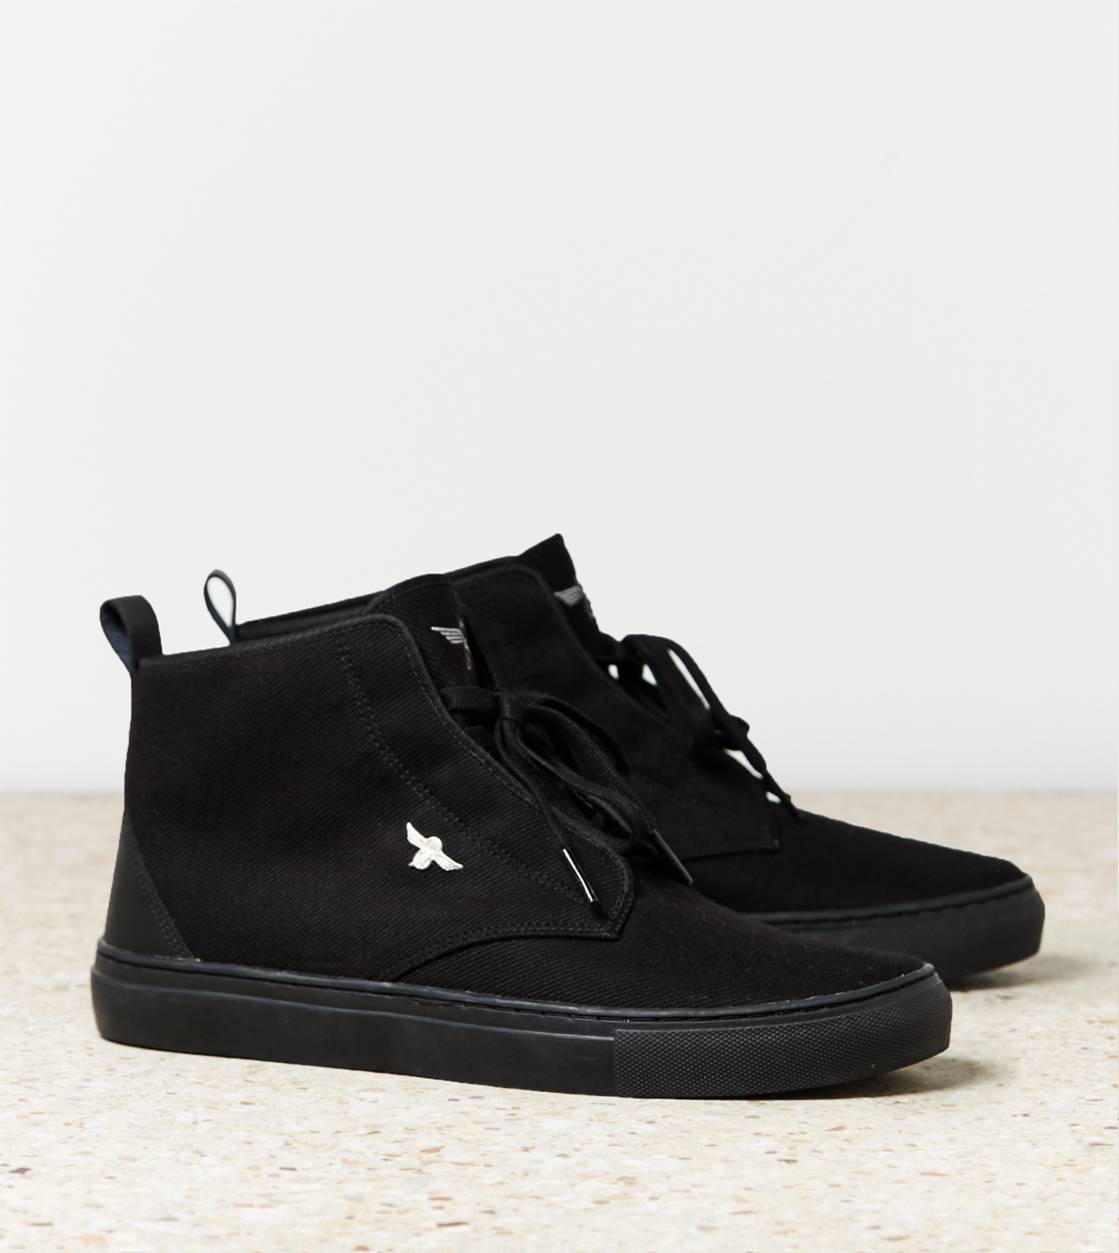 Black Creative Recreation Hi-Top Sneaker